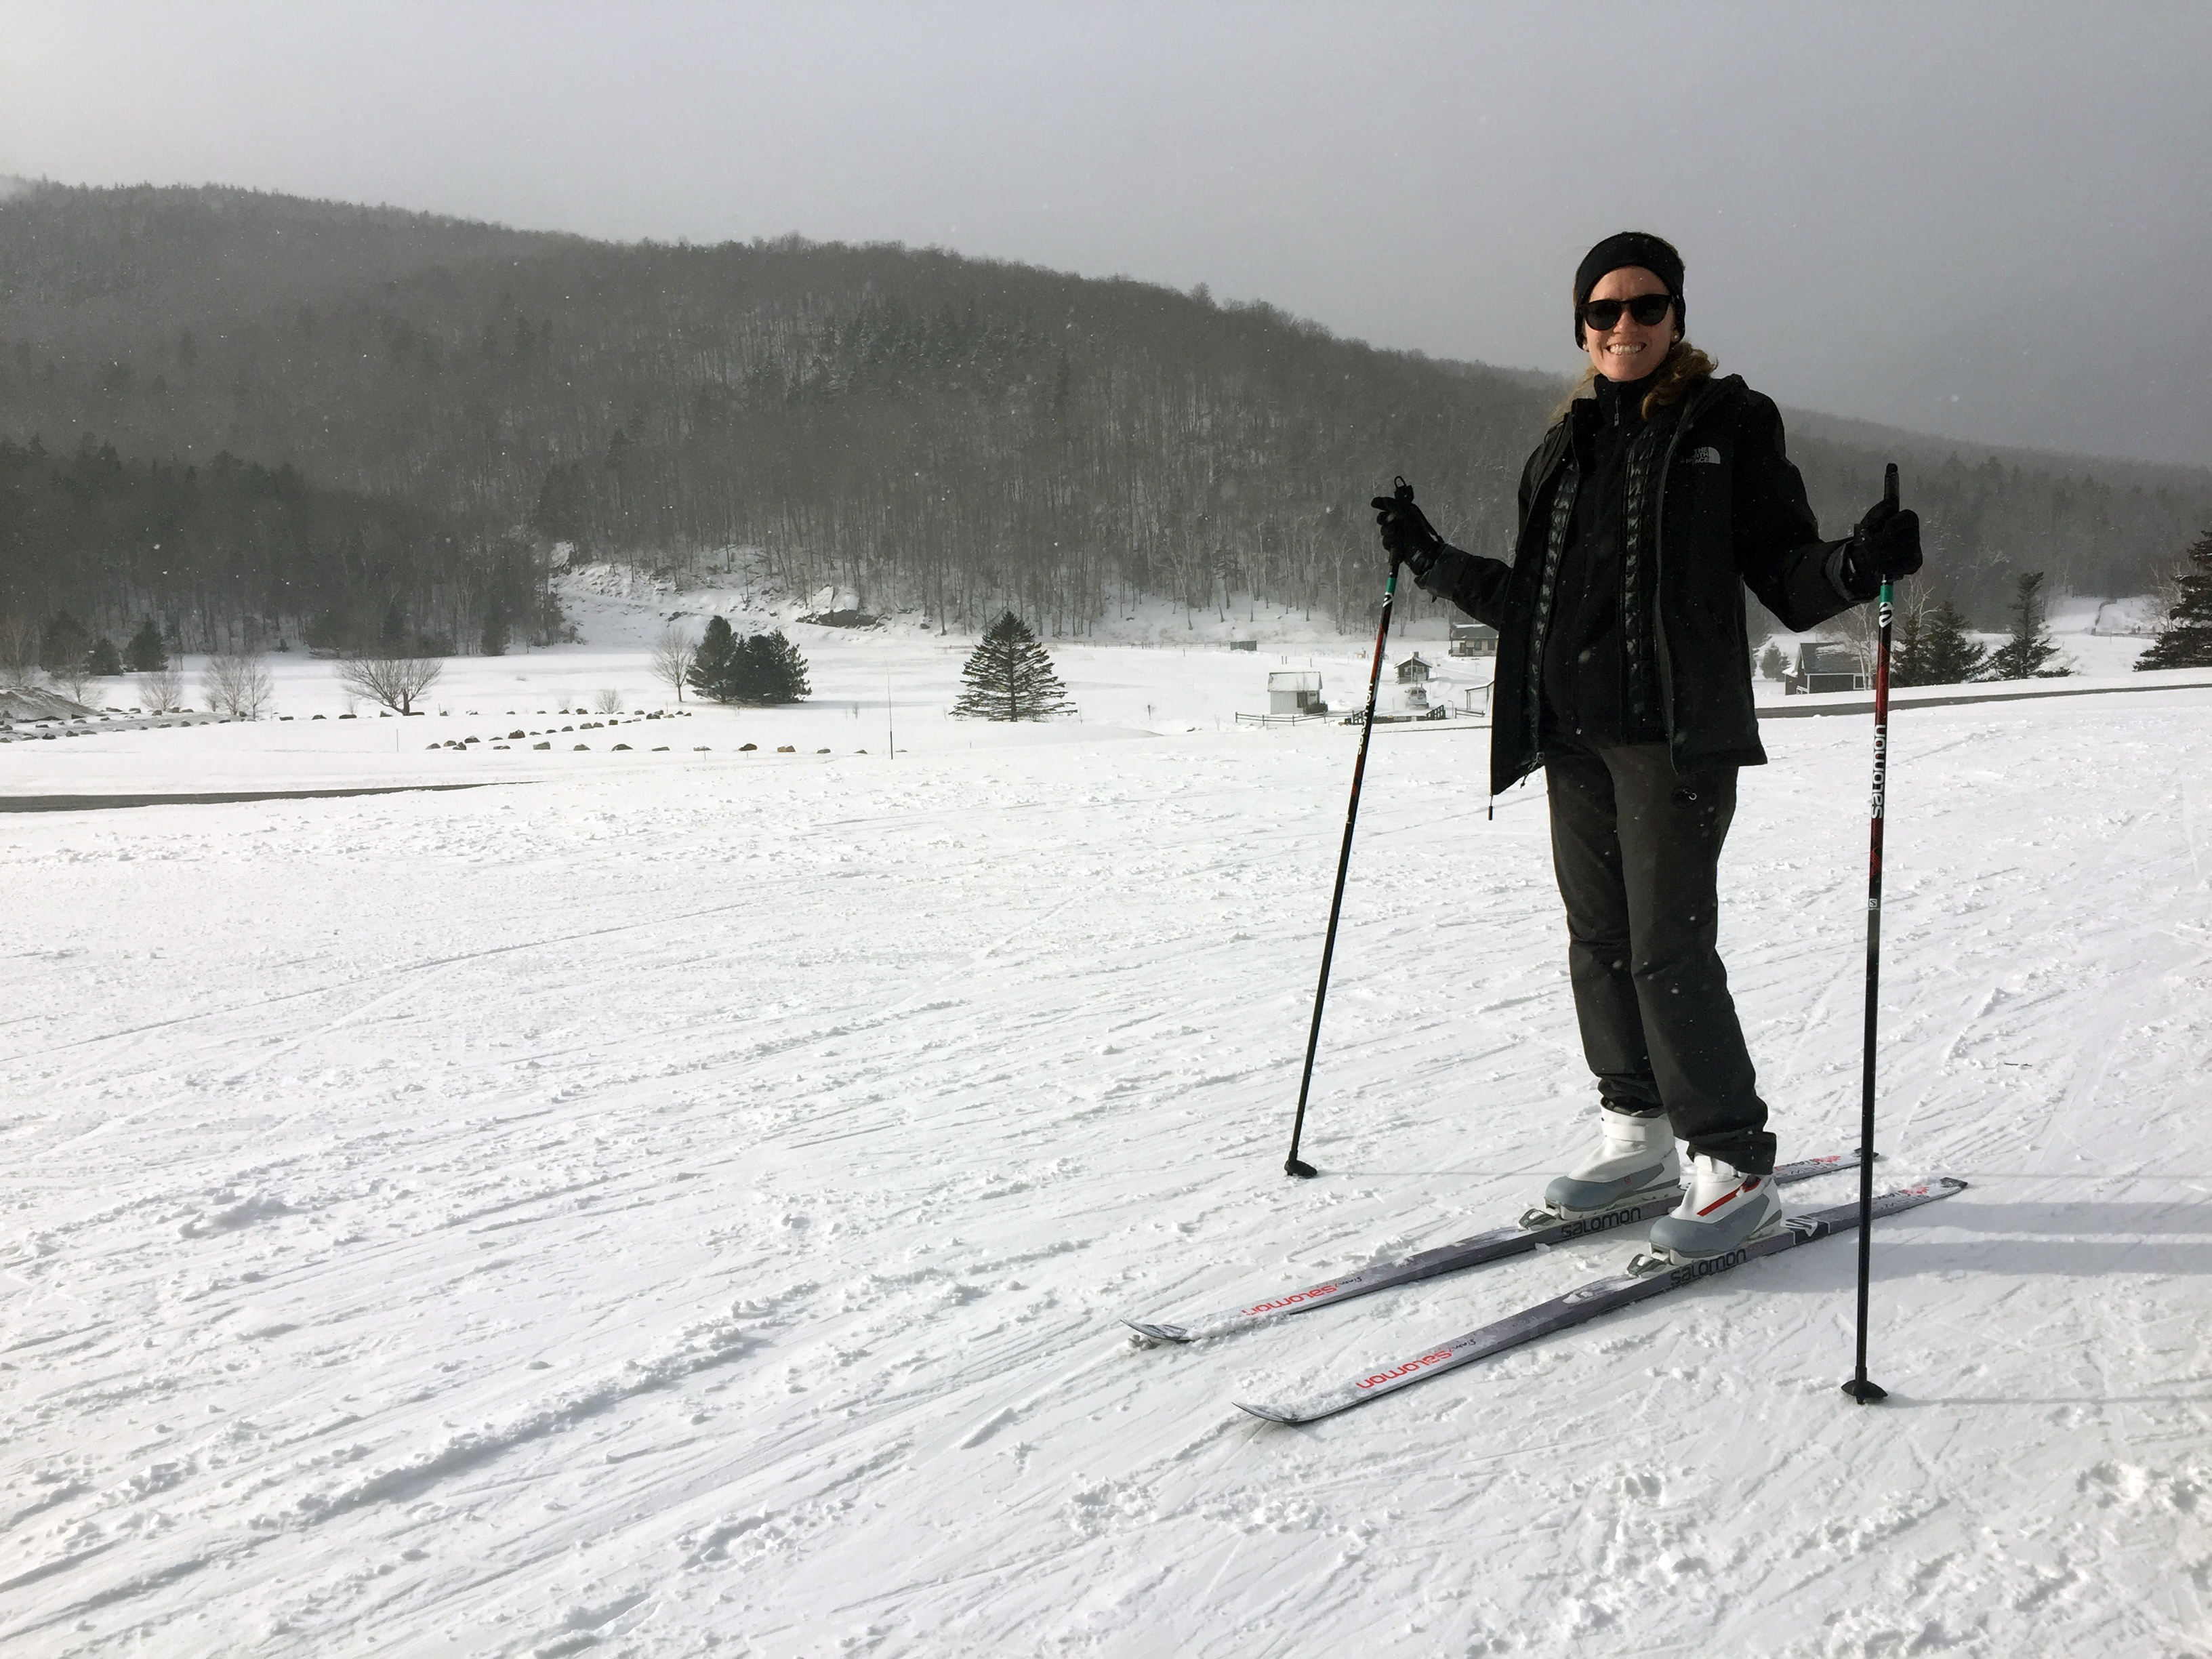 Cross country skiing at Glen